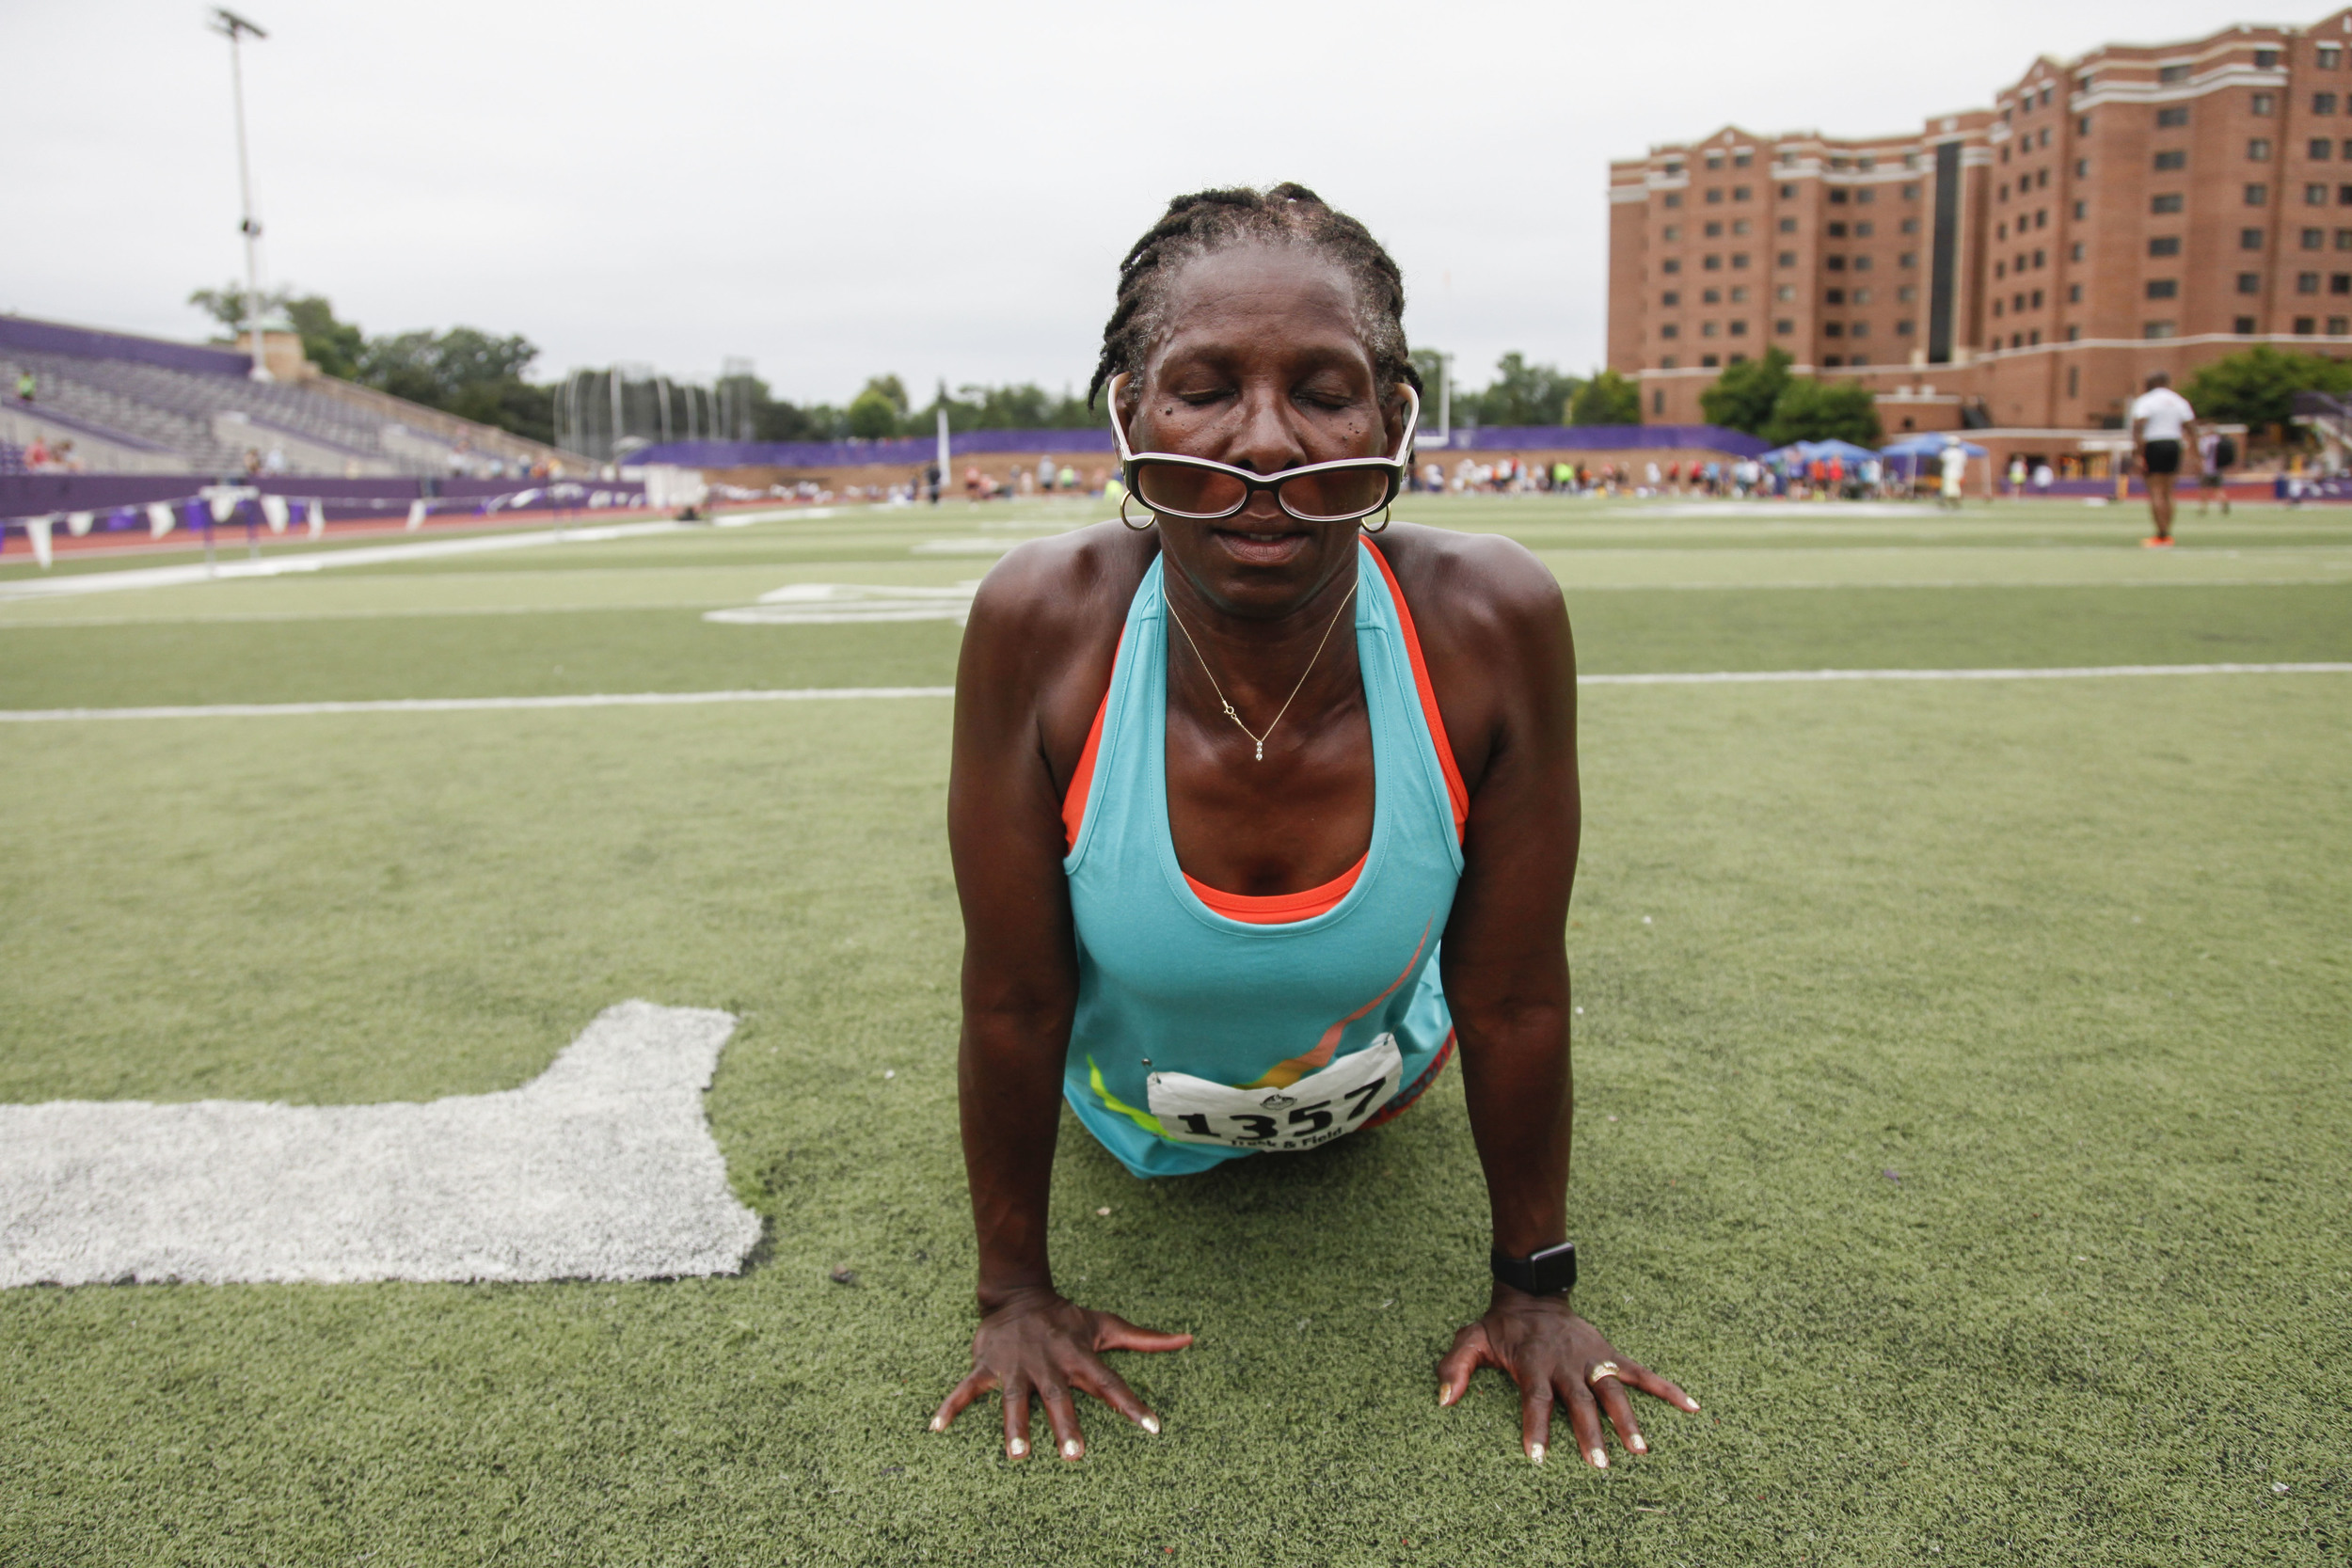 Regina Stewart, a runner participating in the 2015 National Senior Games Track and Field event, stretches in between heats on the St. Thomas University Field in Minneapolis, MN. This event took place on Jul. 14, 2015.